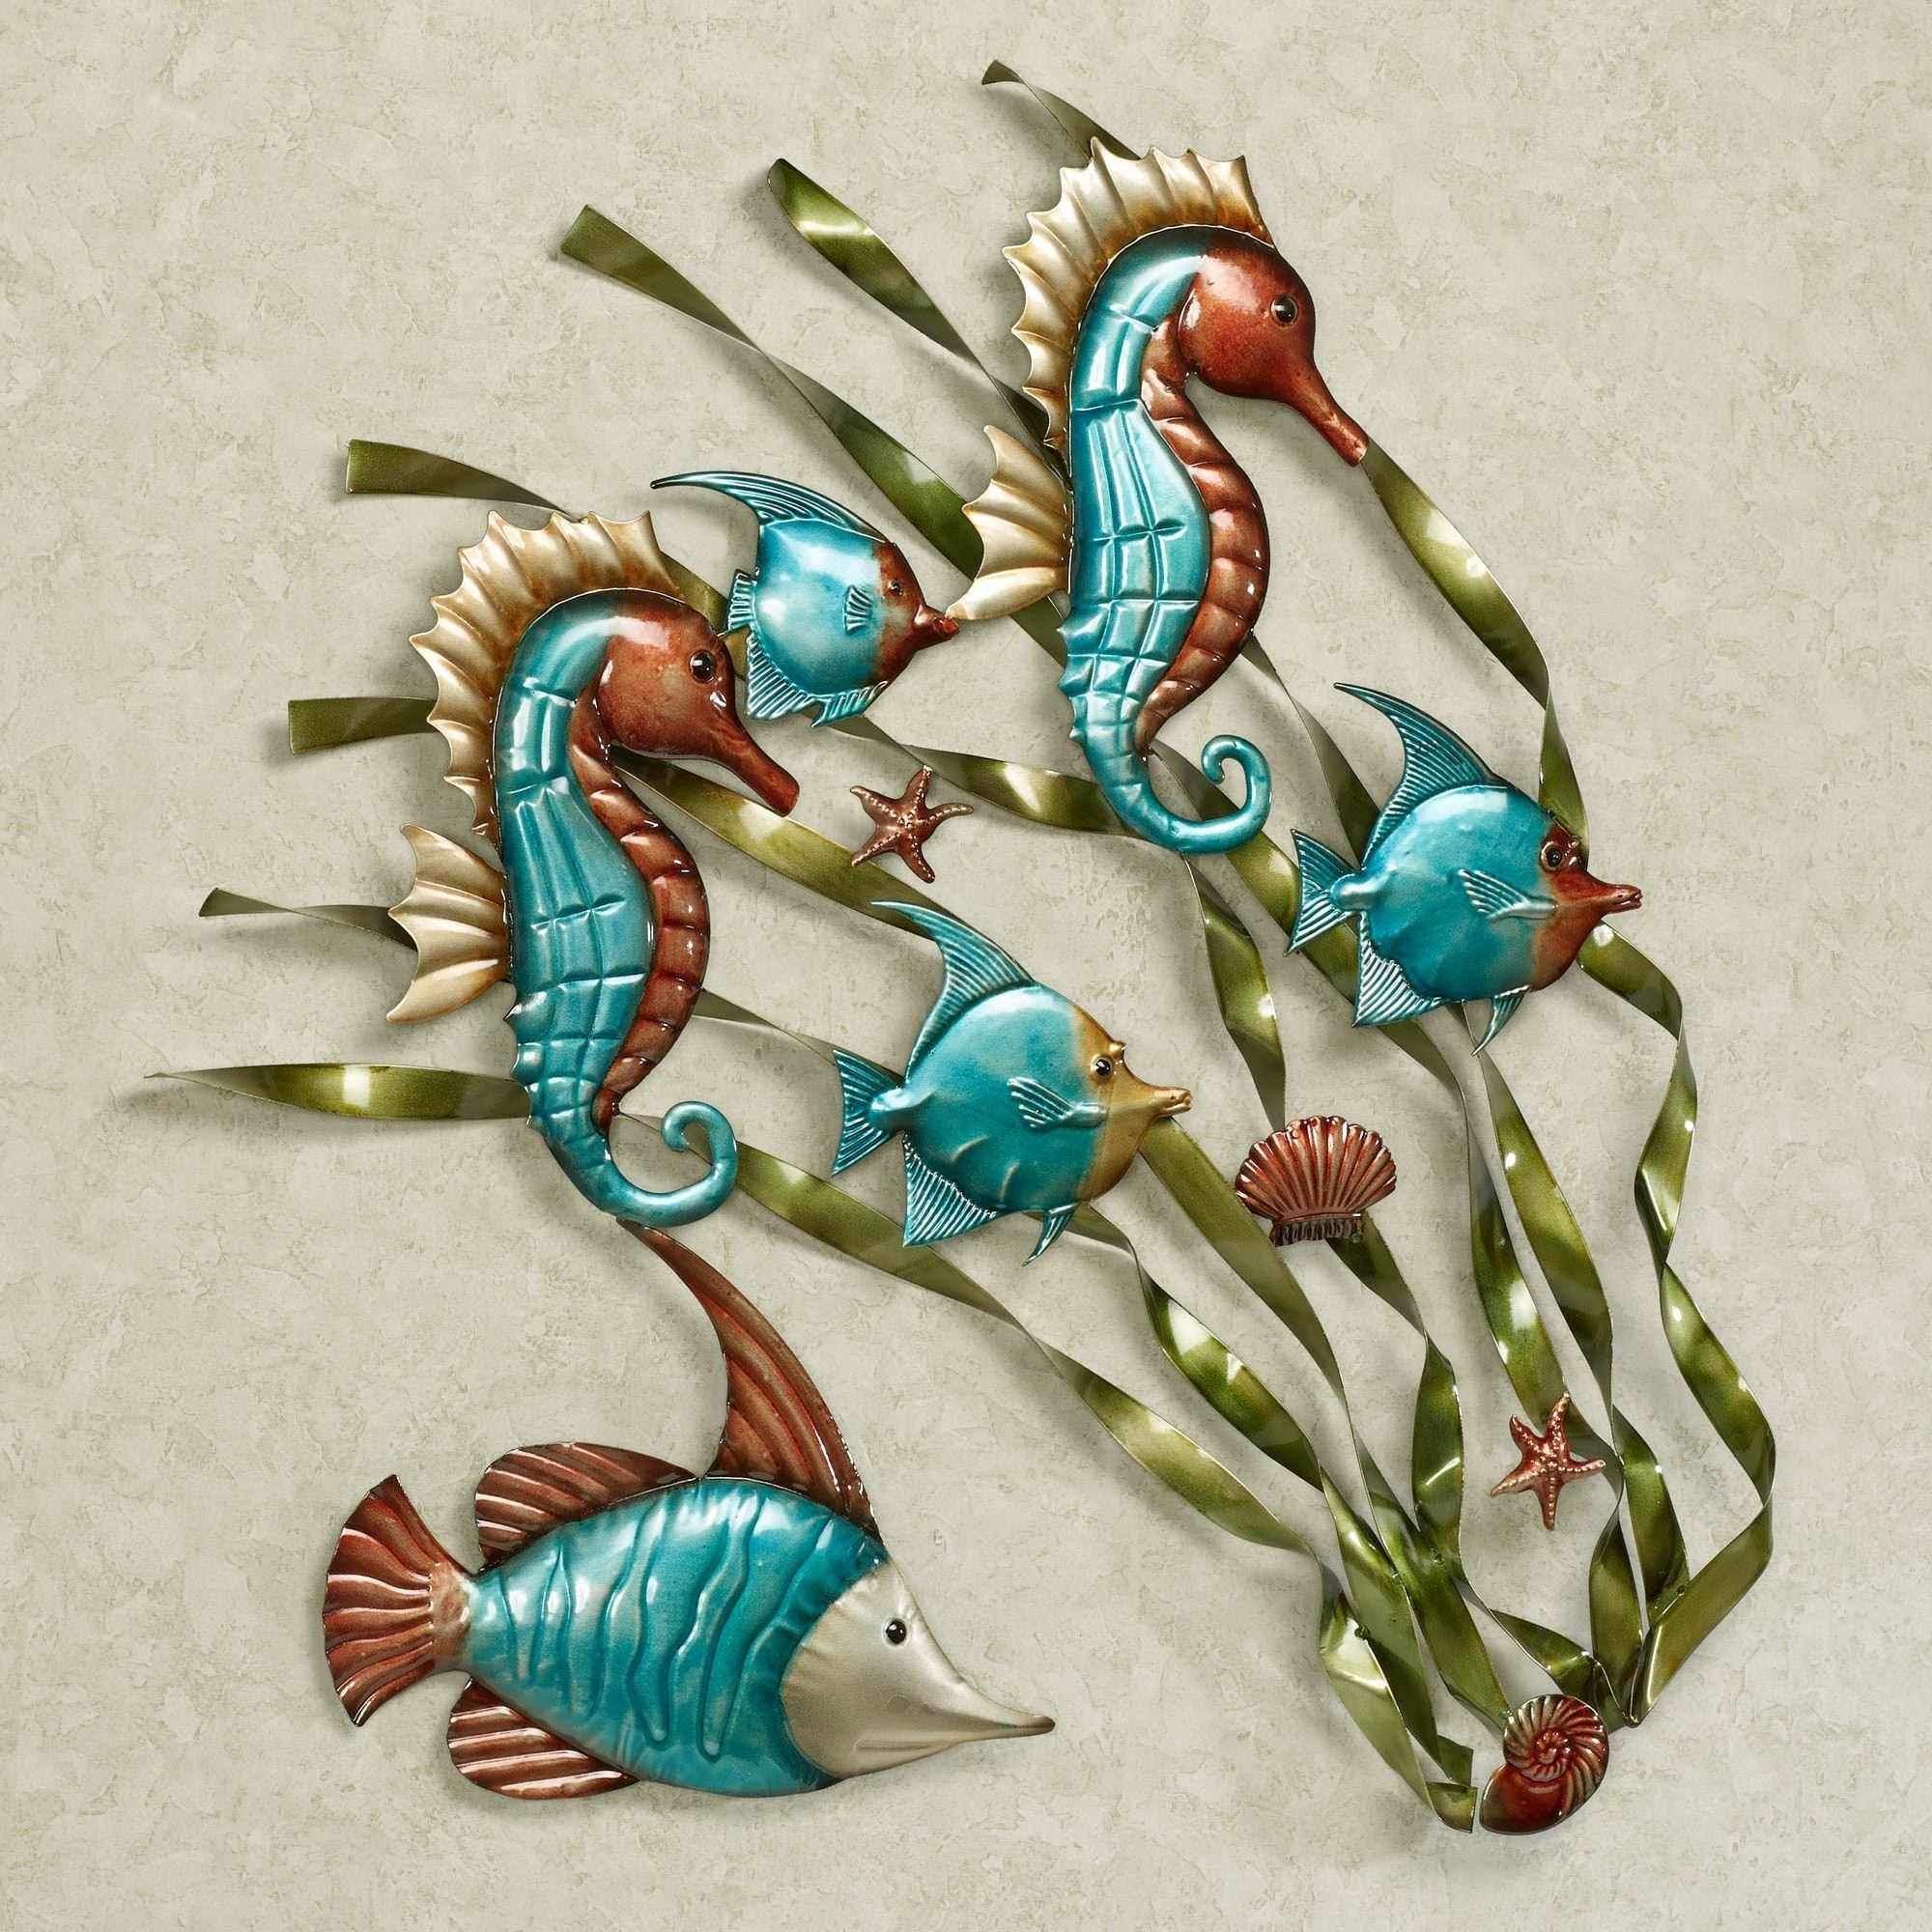 Most Recently Released Turquoise Metal Wall Art Inside Deep Sea Fish And Seahorse Metal Wall Art (View 15 of 15)